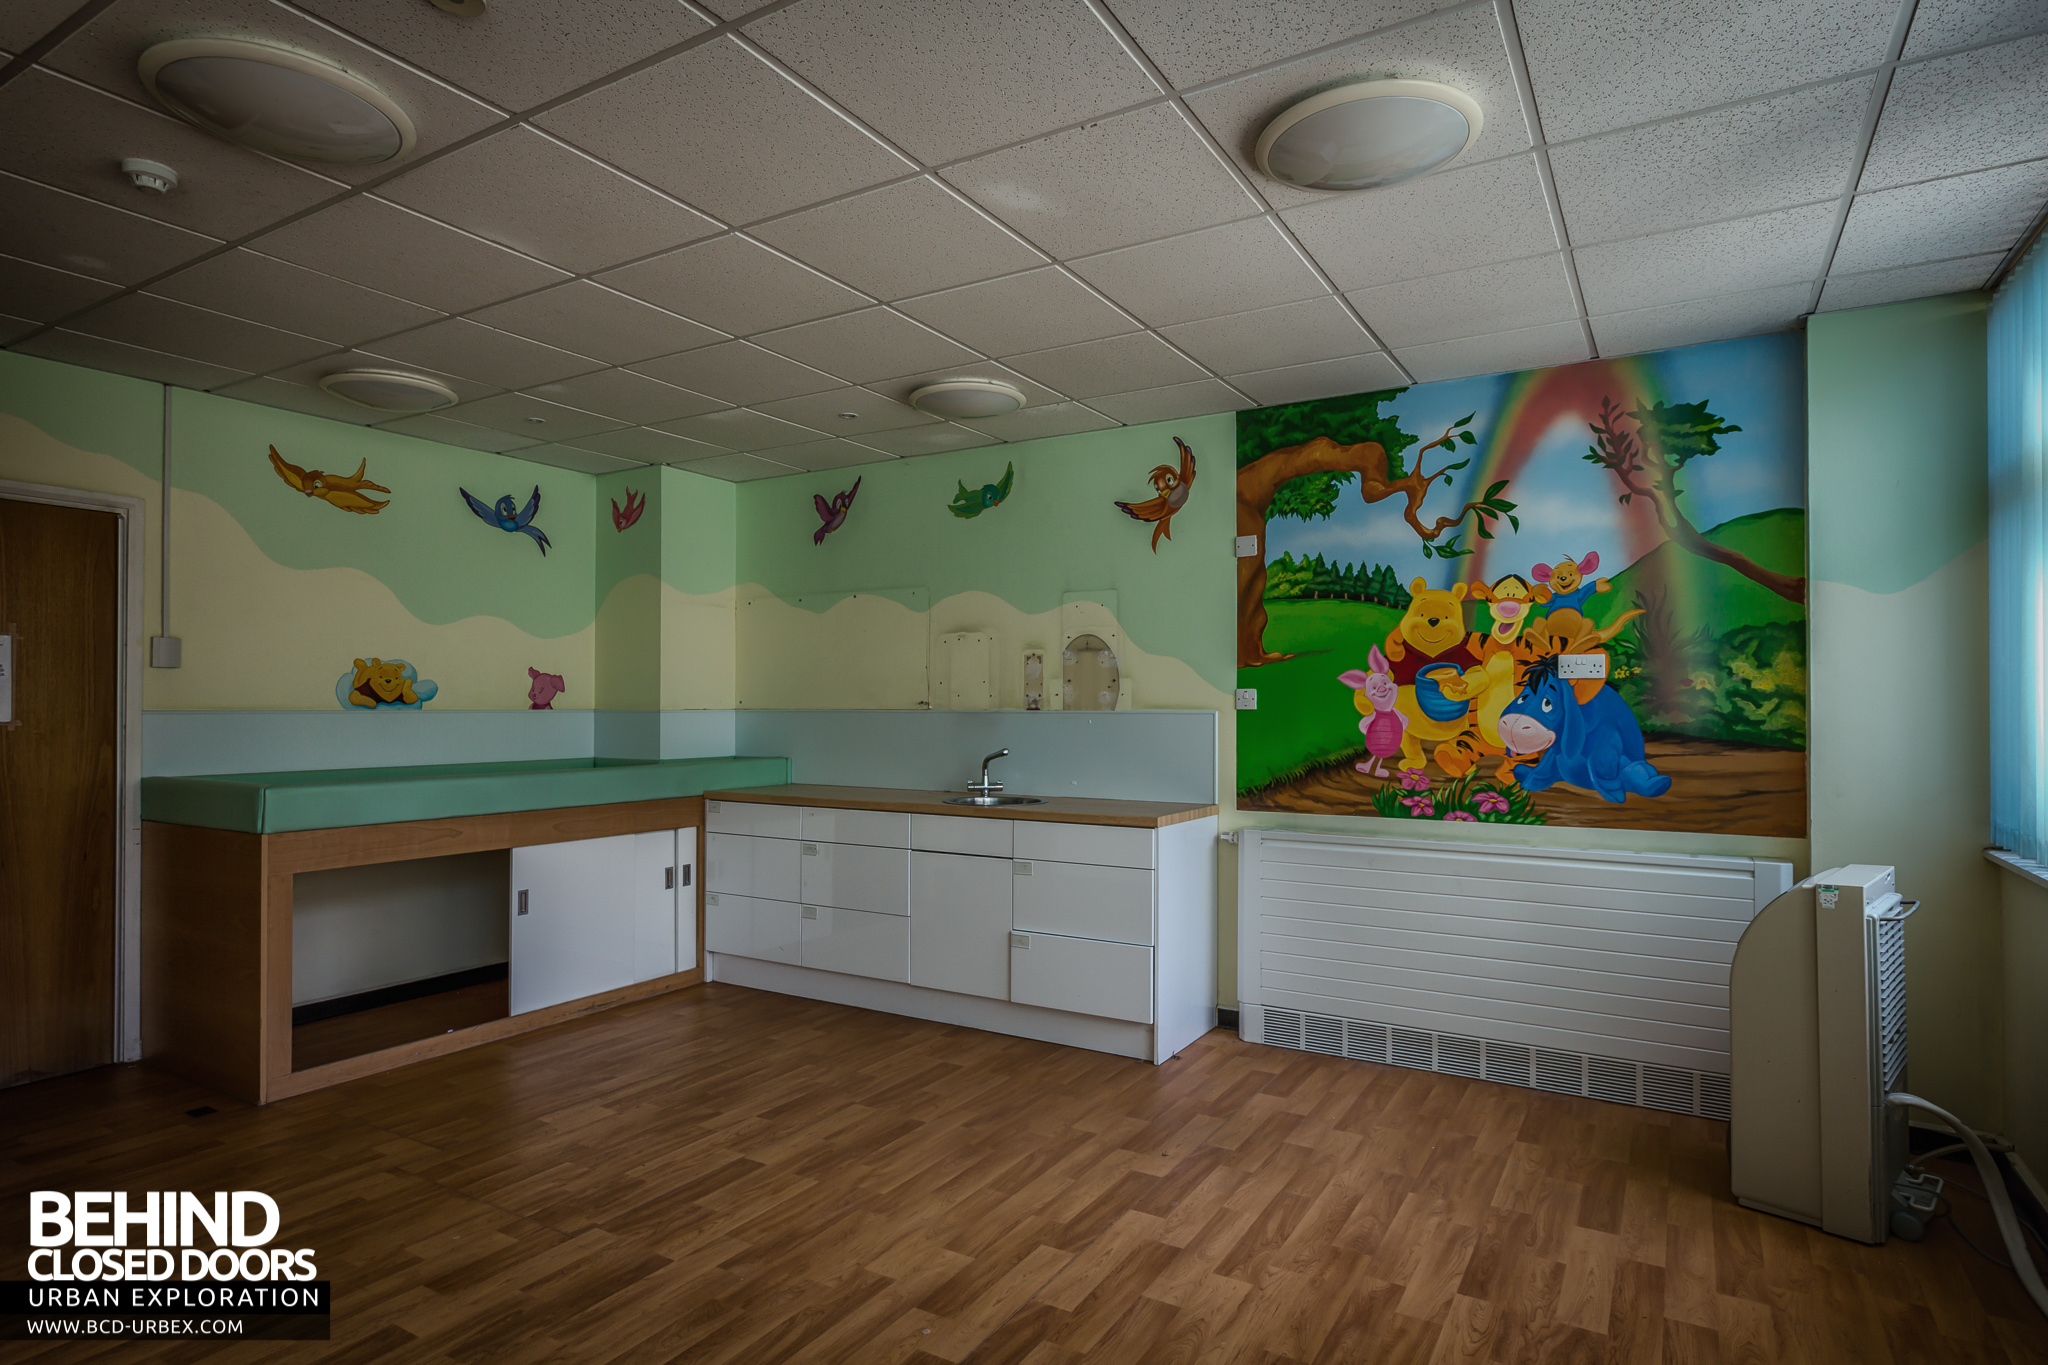 Queen Elizabeth II Hospital U2013 Postnatal Care Room